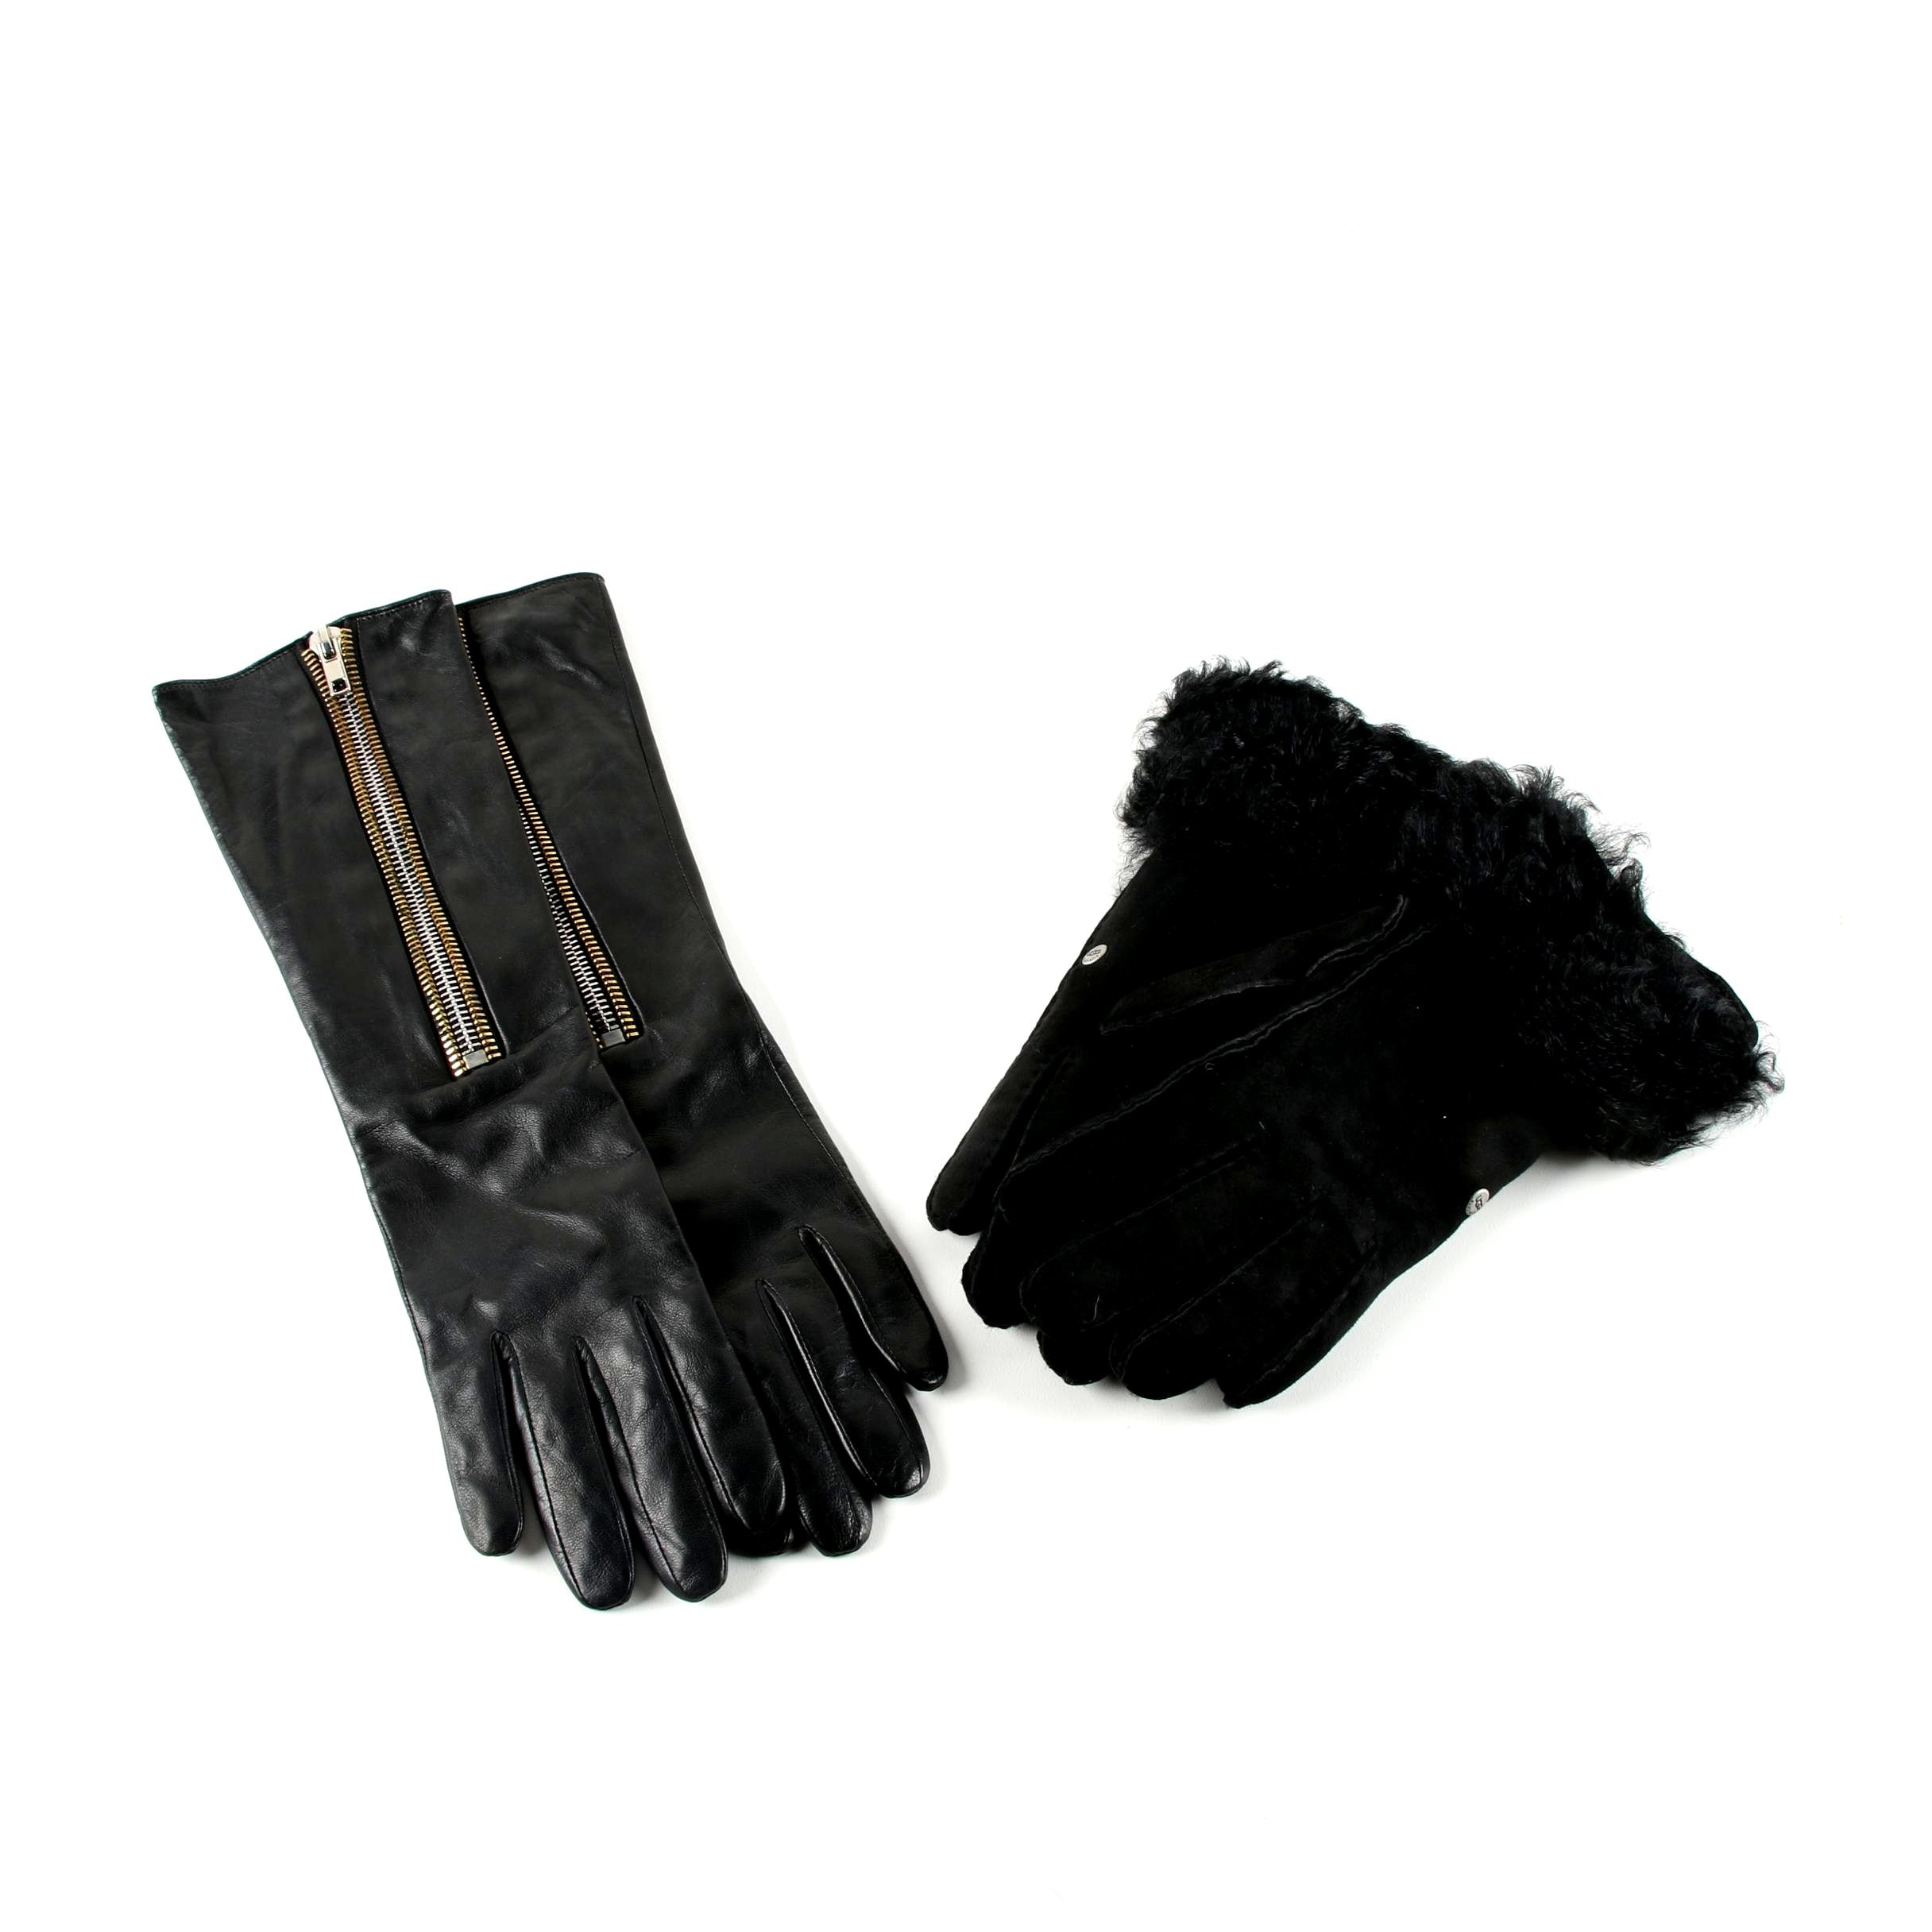 Women's UGG Australia Black Suede and Shearling Fur and Per Se Leather Gloves